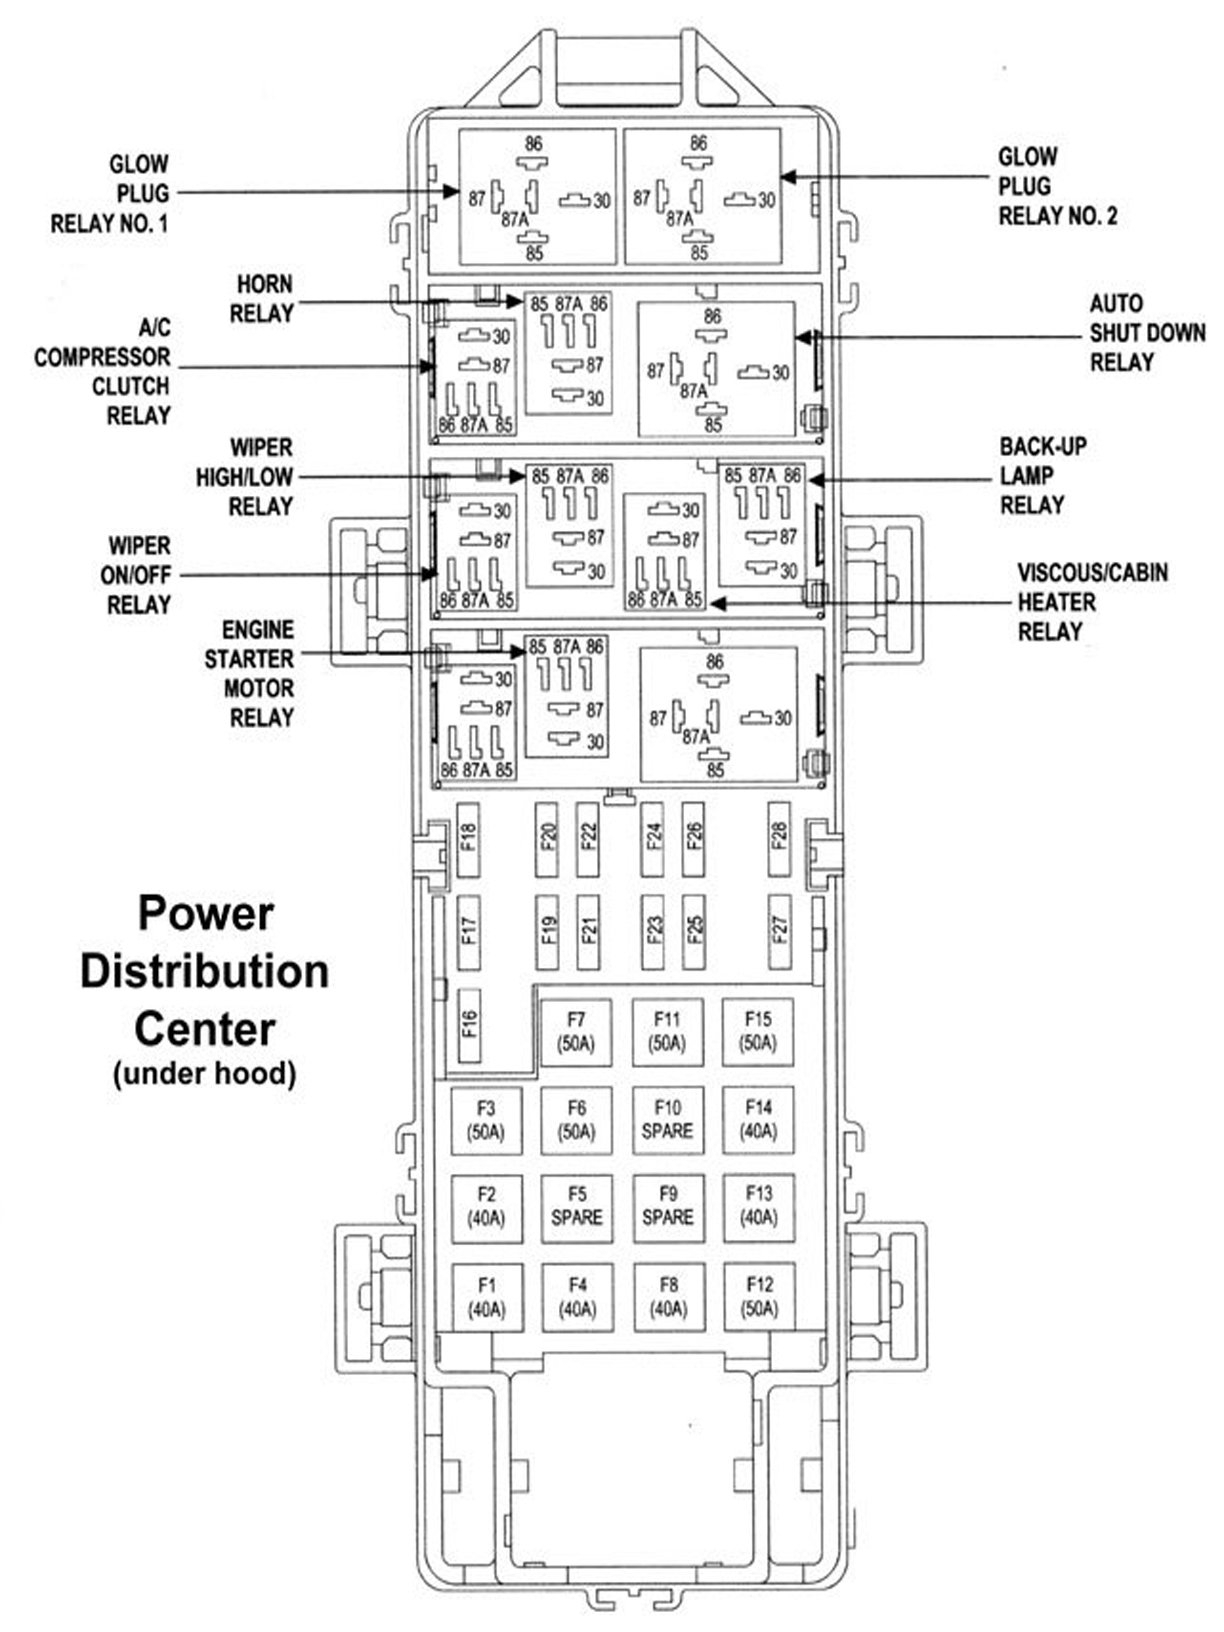 jeep grand cherokee wj 1999 to 2004 fuse box diagram cherokeeforum intended for 1998 jeep grand cherokee parts diagram jeep grand cherokee wj 1999 to 2004 fuse box diagram fuse box diagram for 2004 jeep grand cherokee at soozxer.org